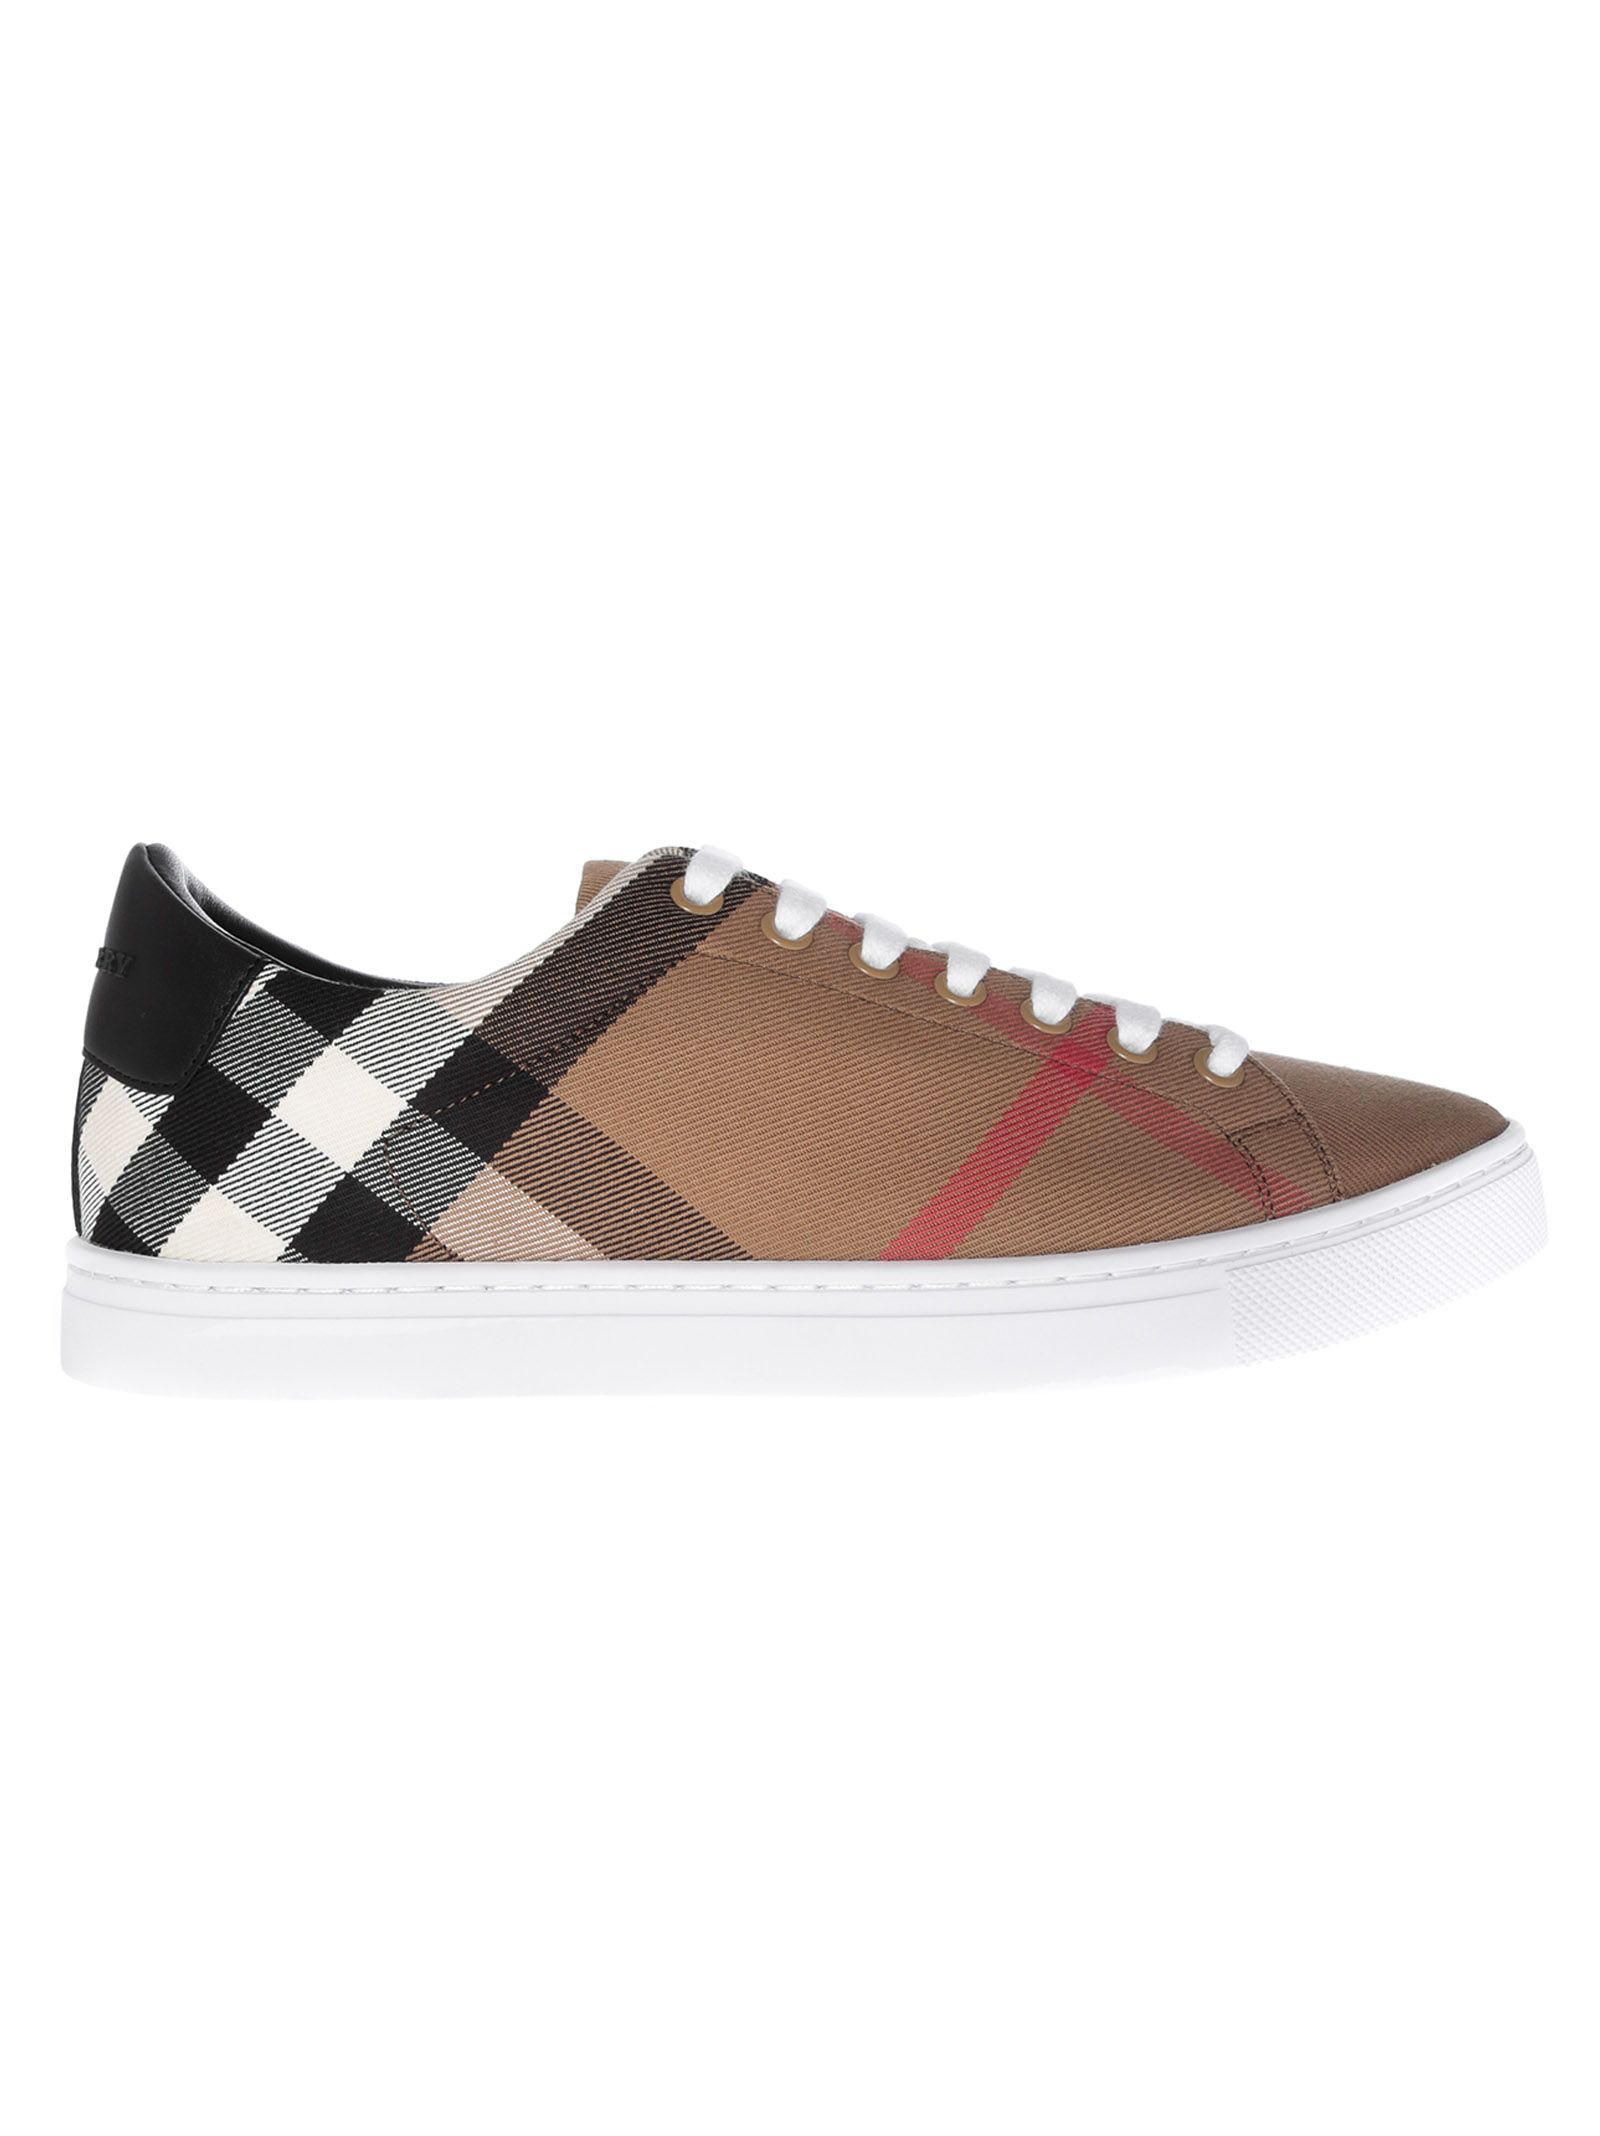 2e393c9d6d6d Burberry Albert House Check   Leather Low-Top Sneaker In Brown ...